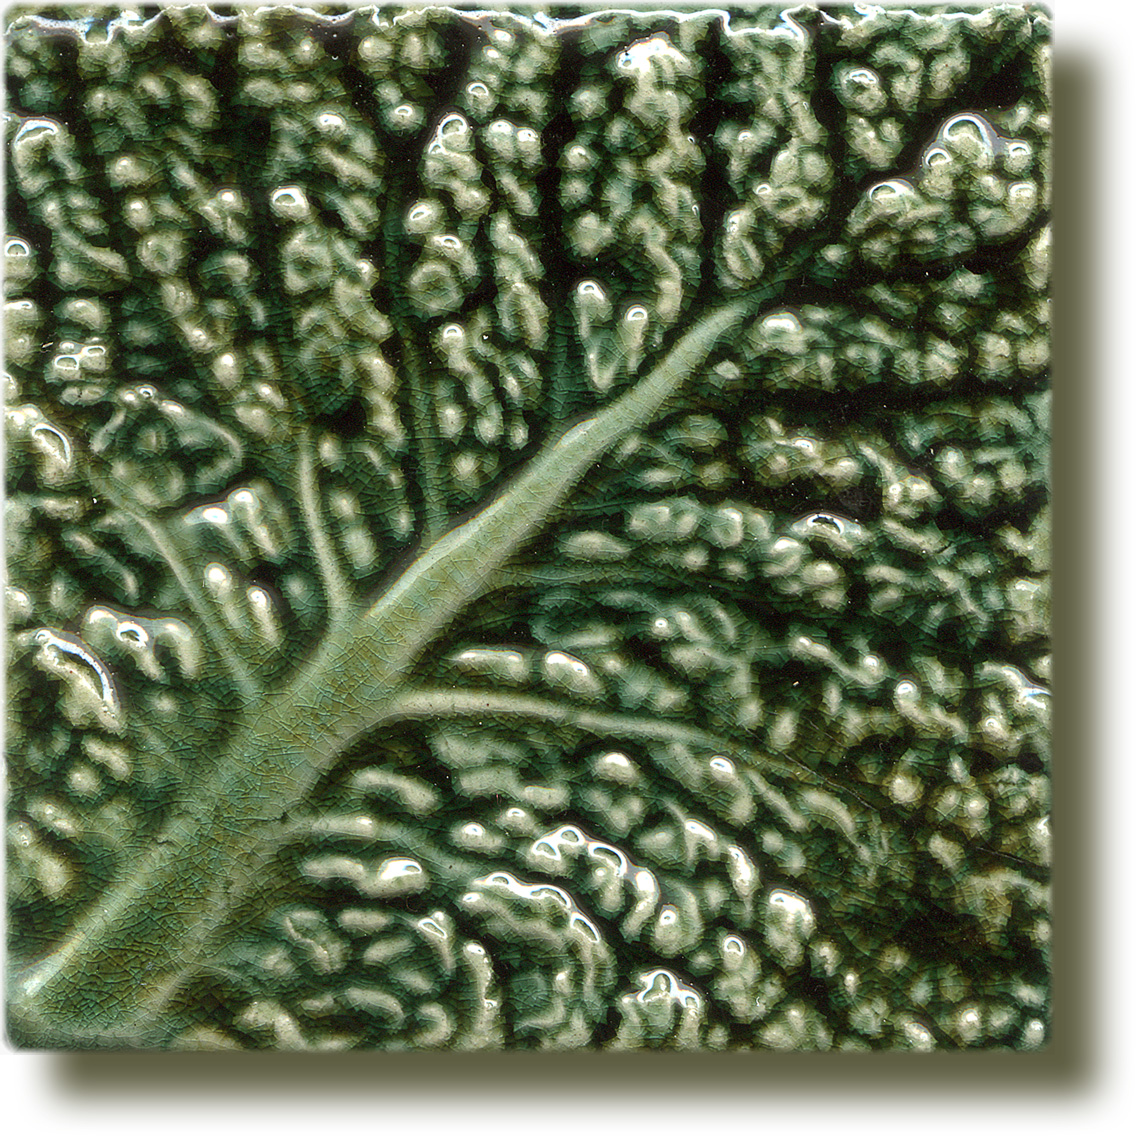 Angela Evans Cabbage tile Diagonal